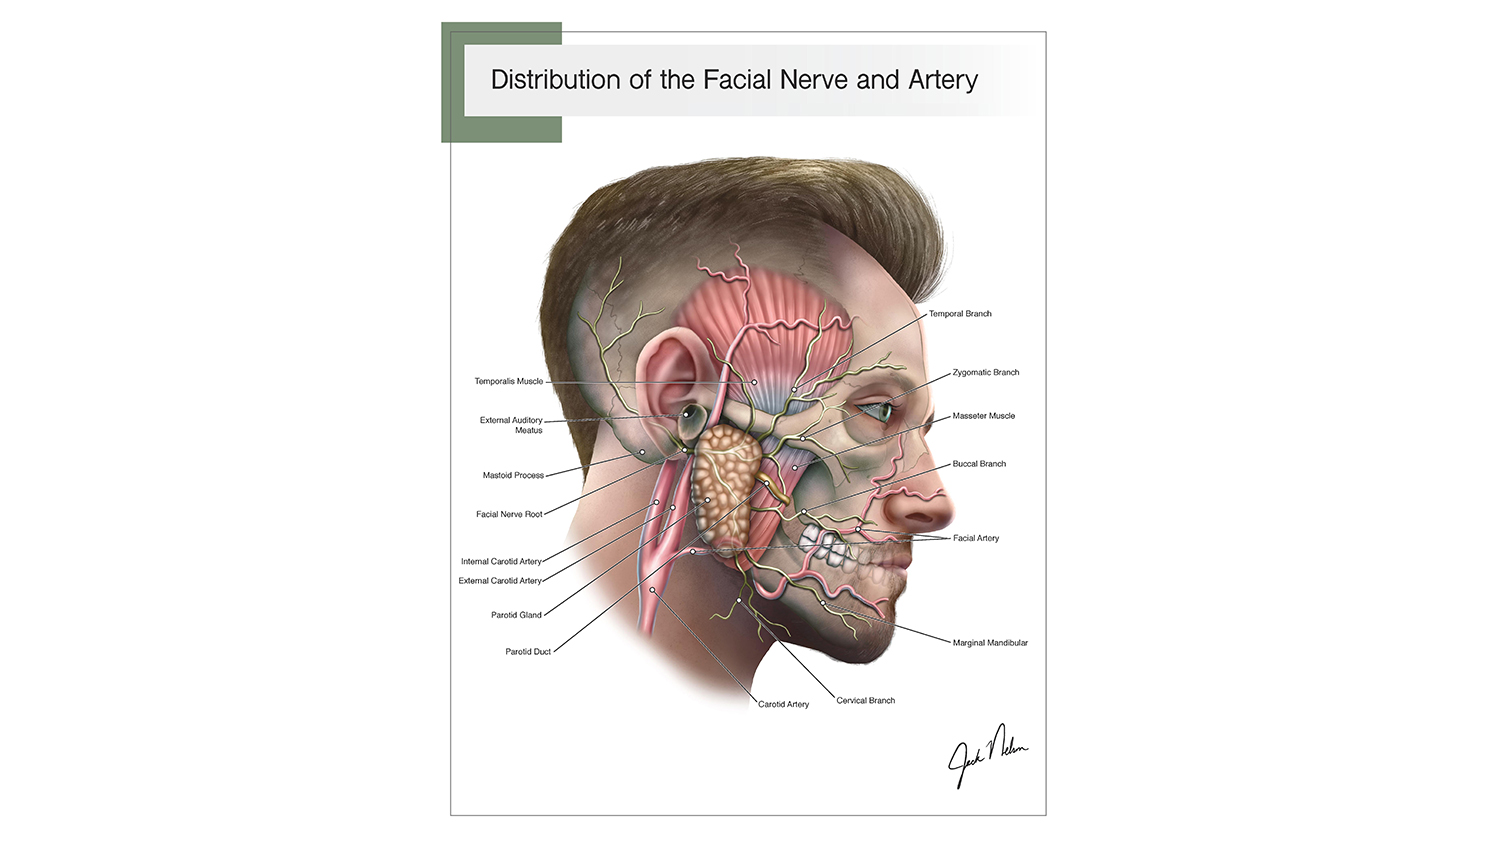 An illustration of facial nerves